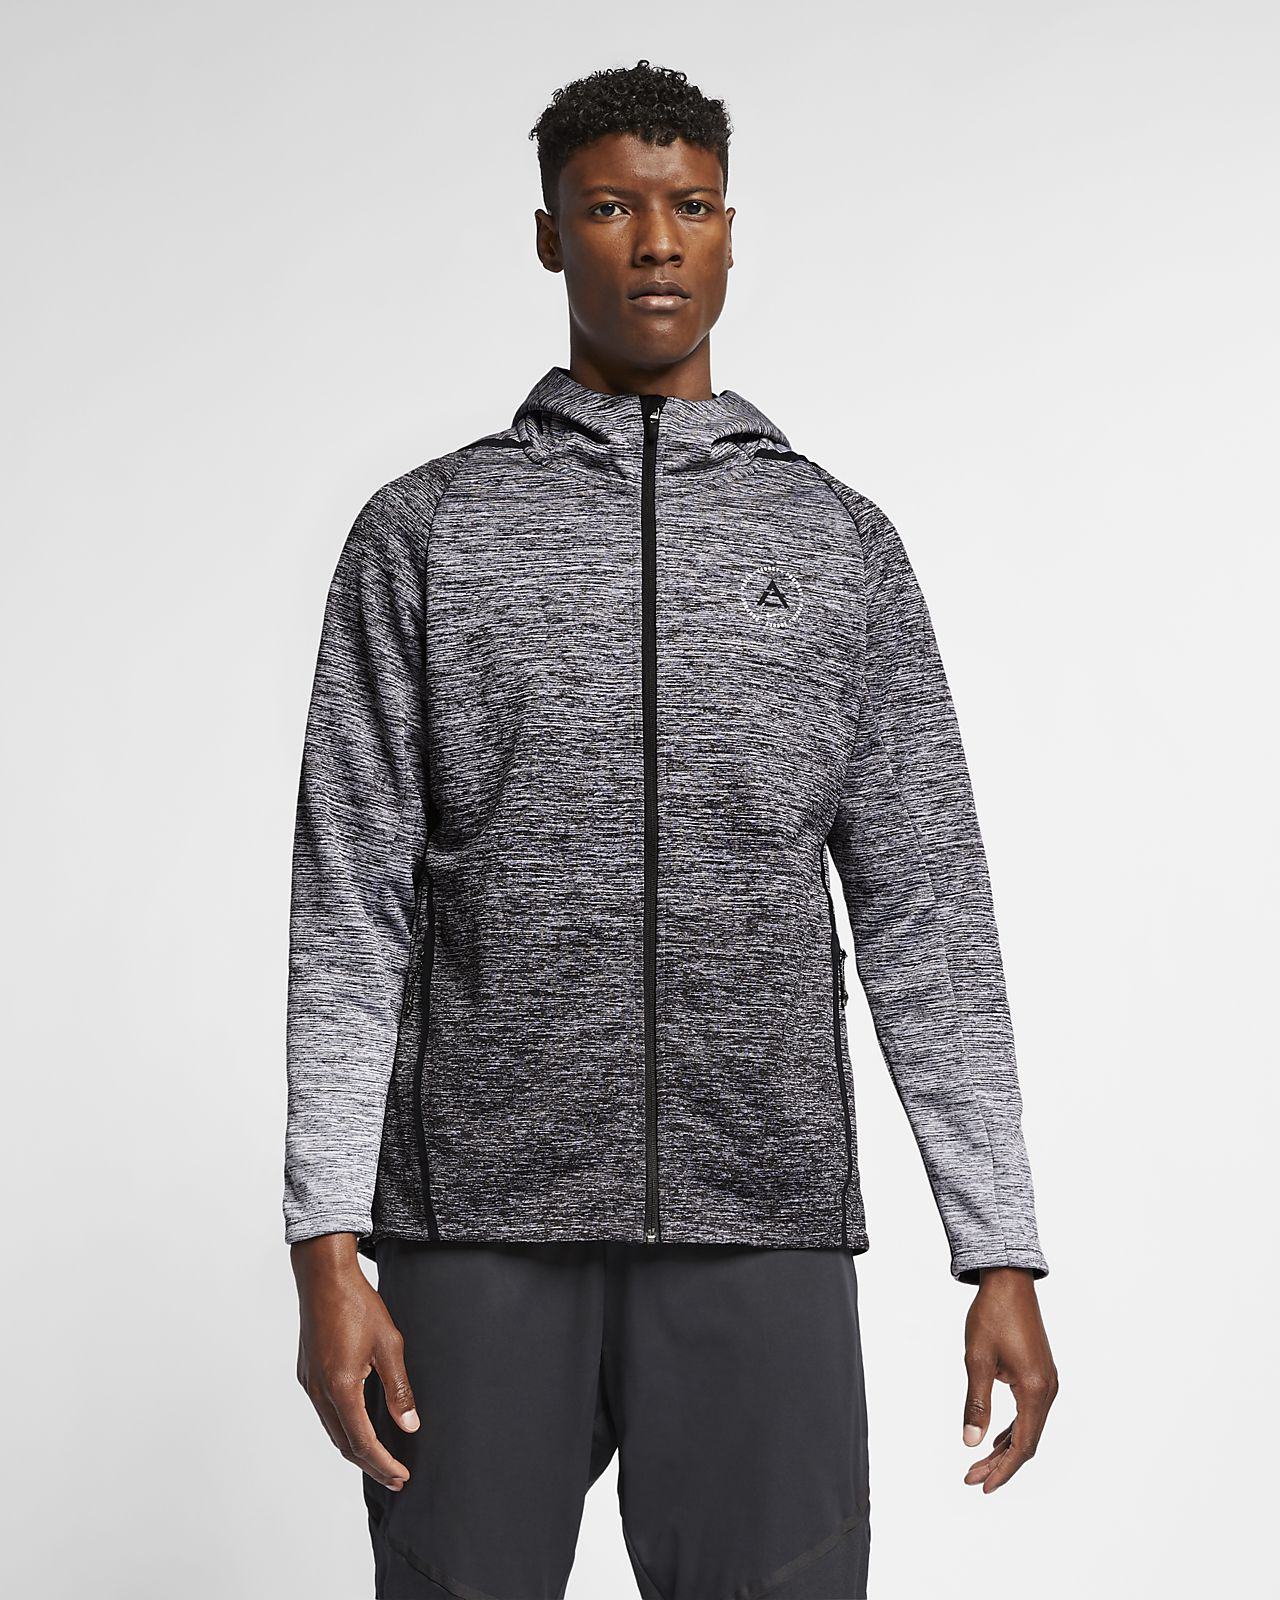 467a48701e5639 Nike Therma Sphere Max Adonis Creed Men s Full-Zip Hooded Training ...